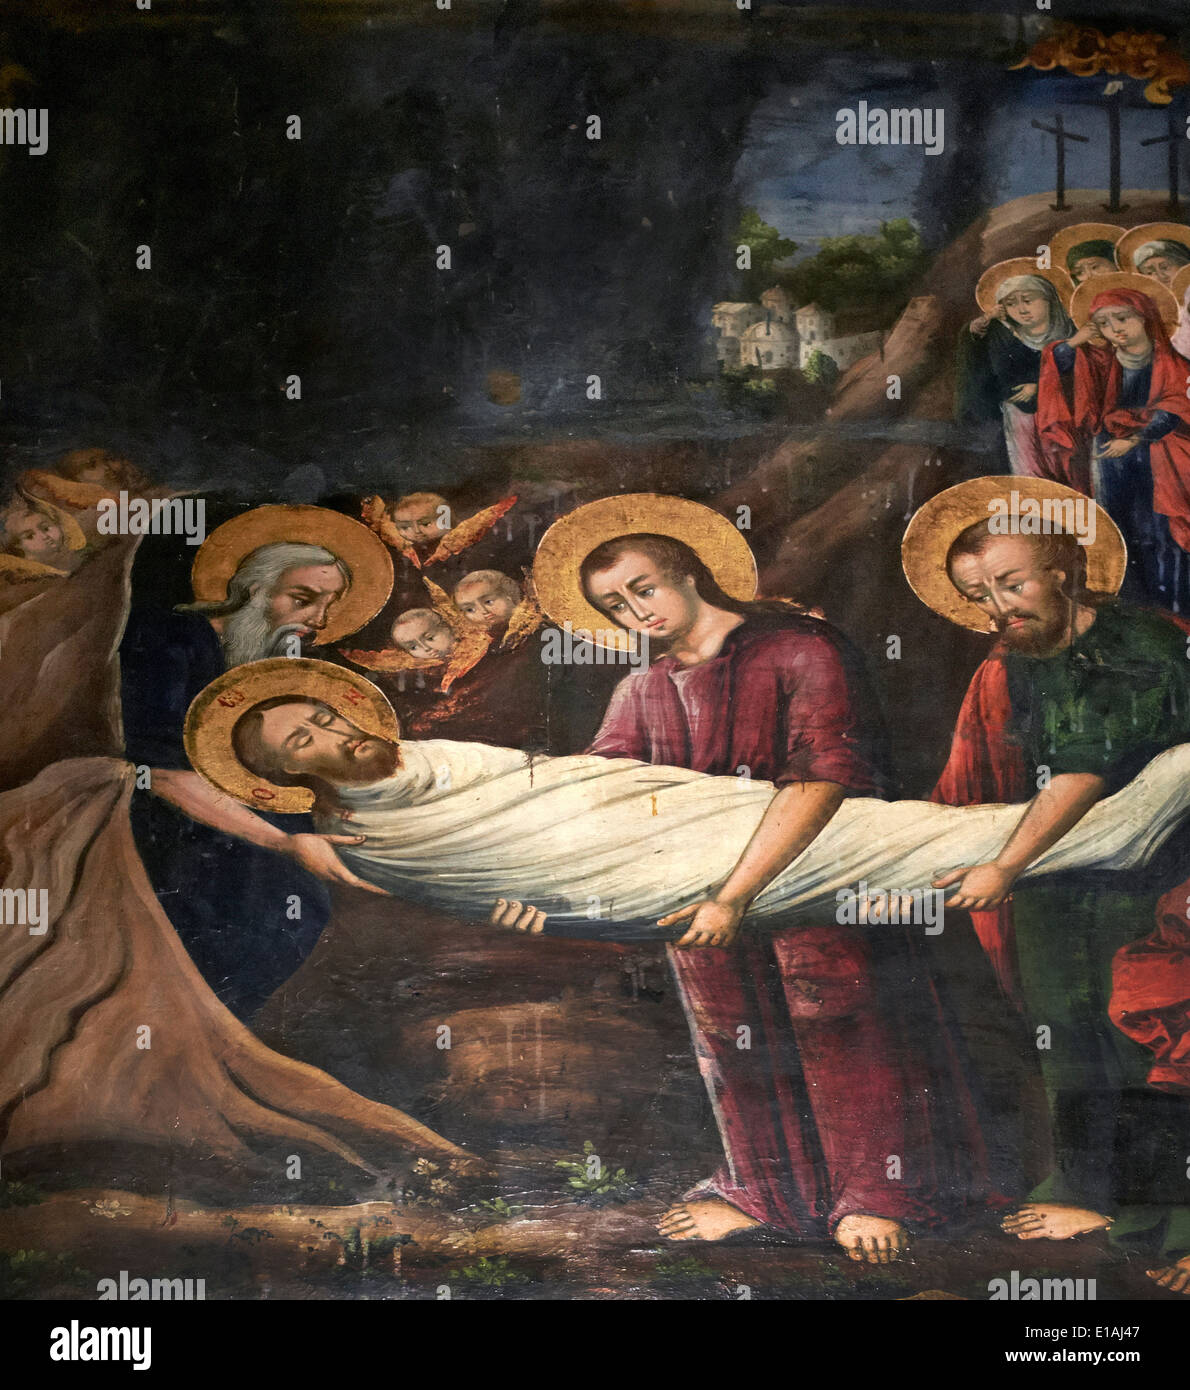 Jesus Christ being laid to rest after his crucifixion - Stock Image